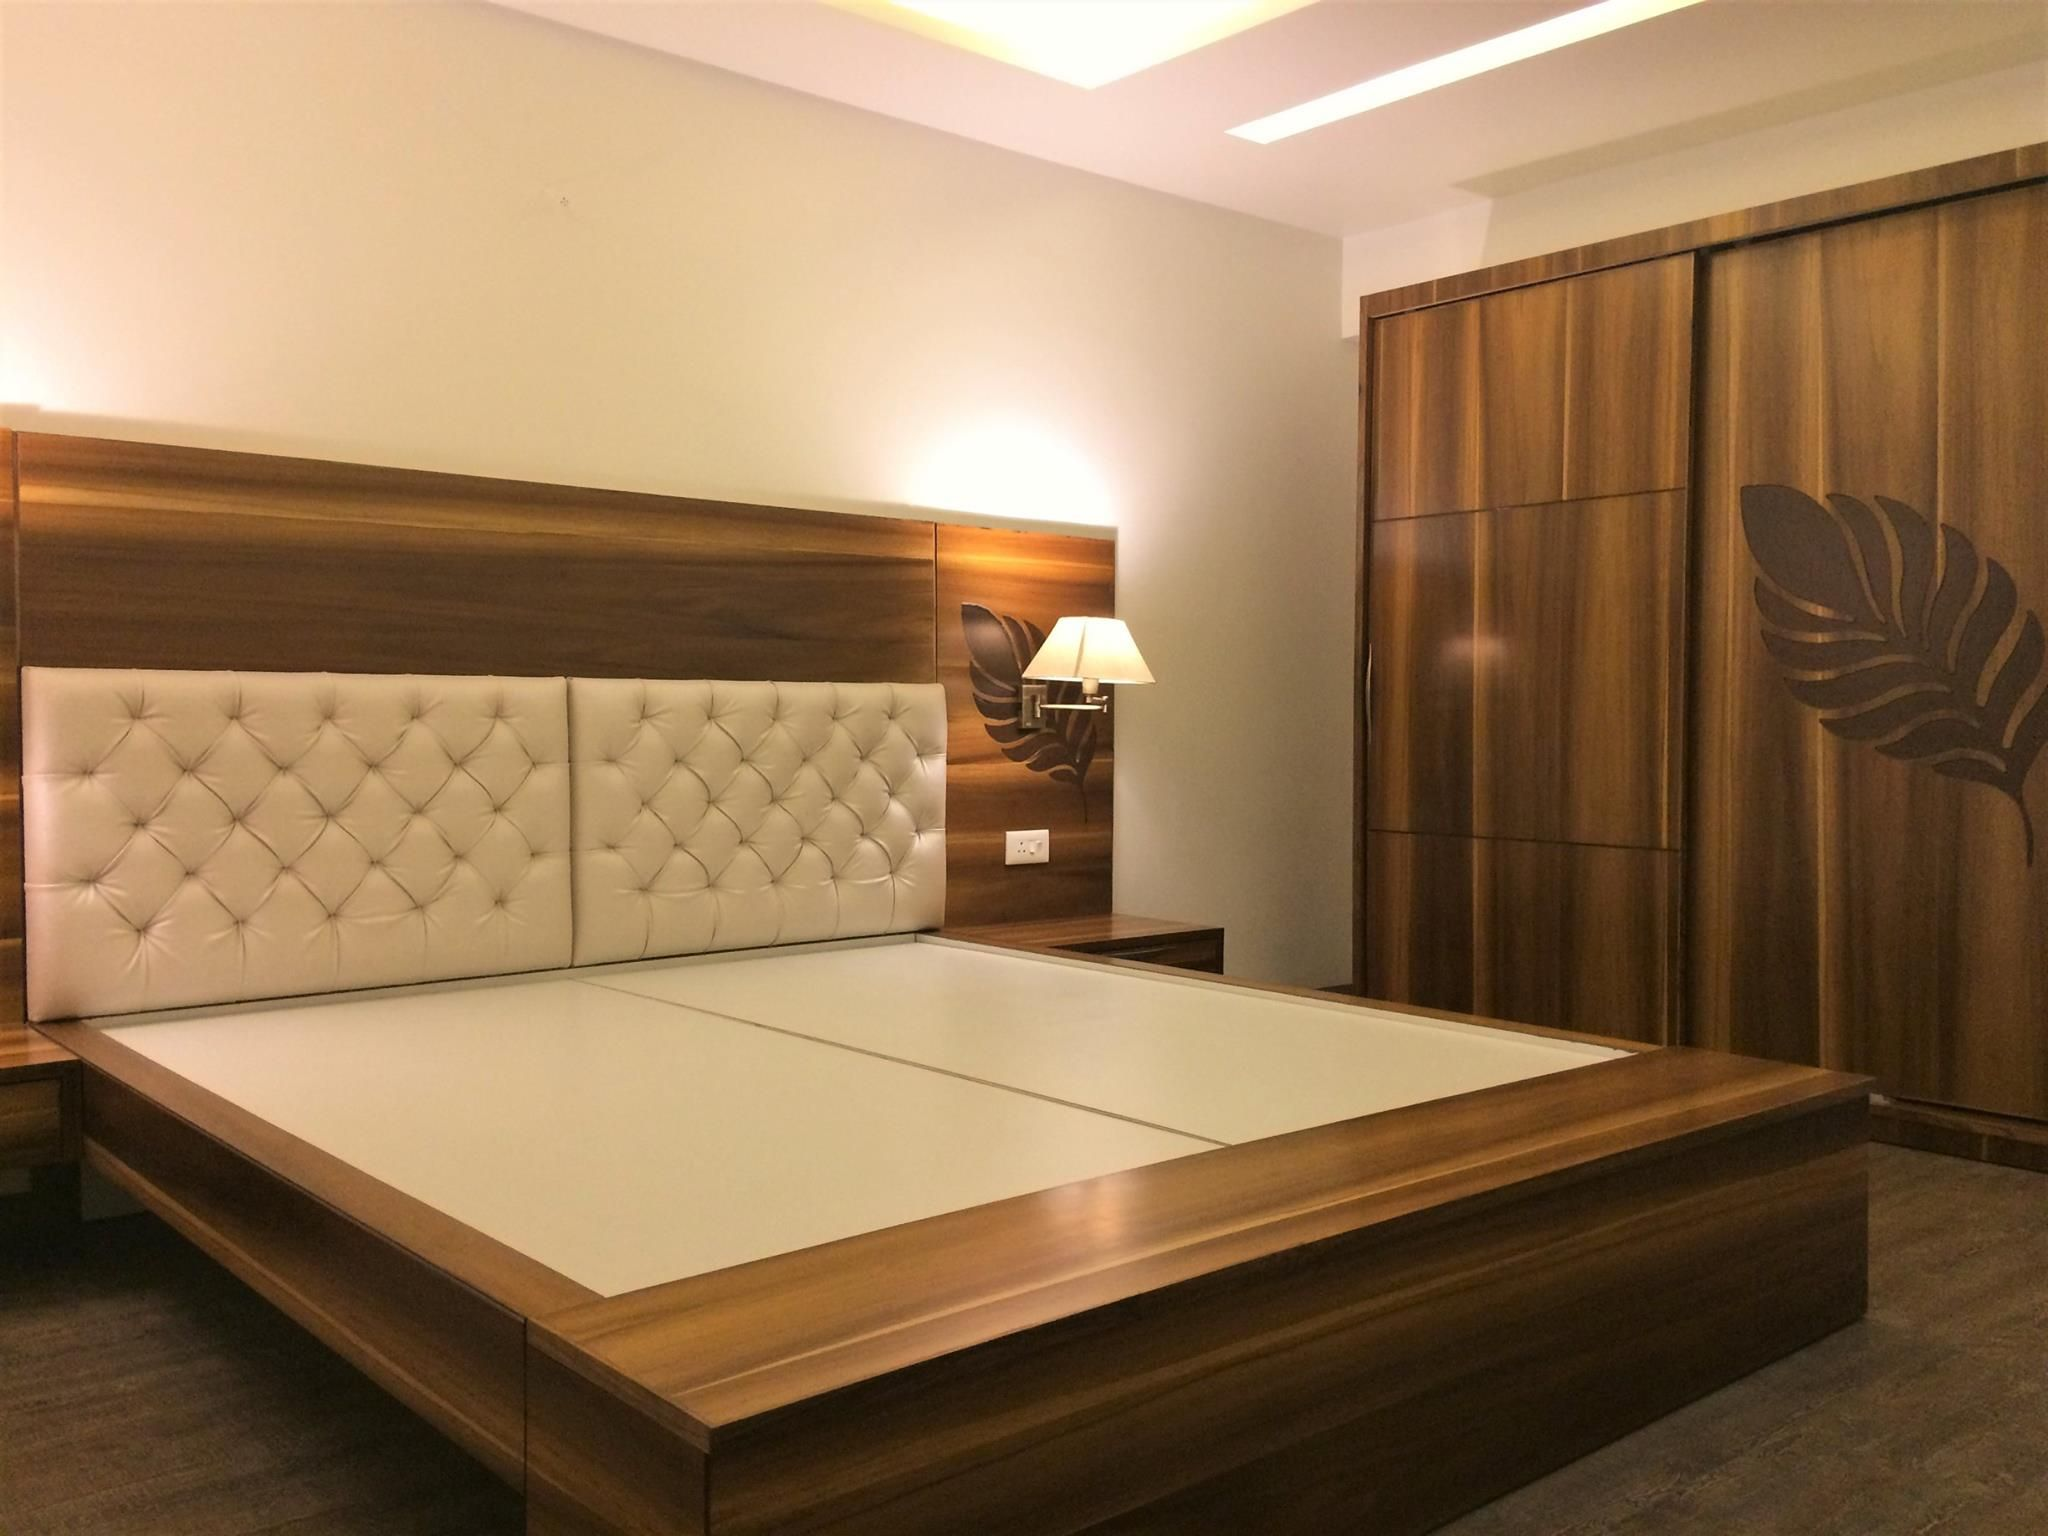 200+ Bedroom Designs - The Architects Diary | Wooden bed ...